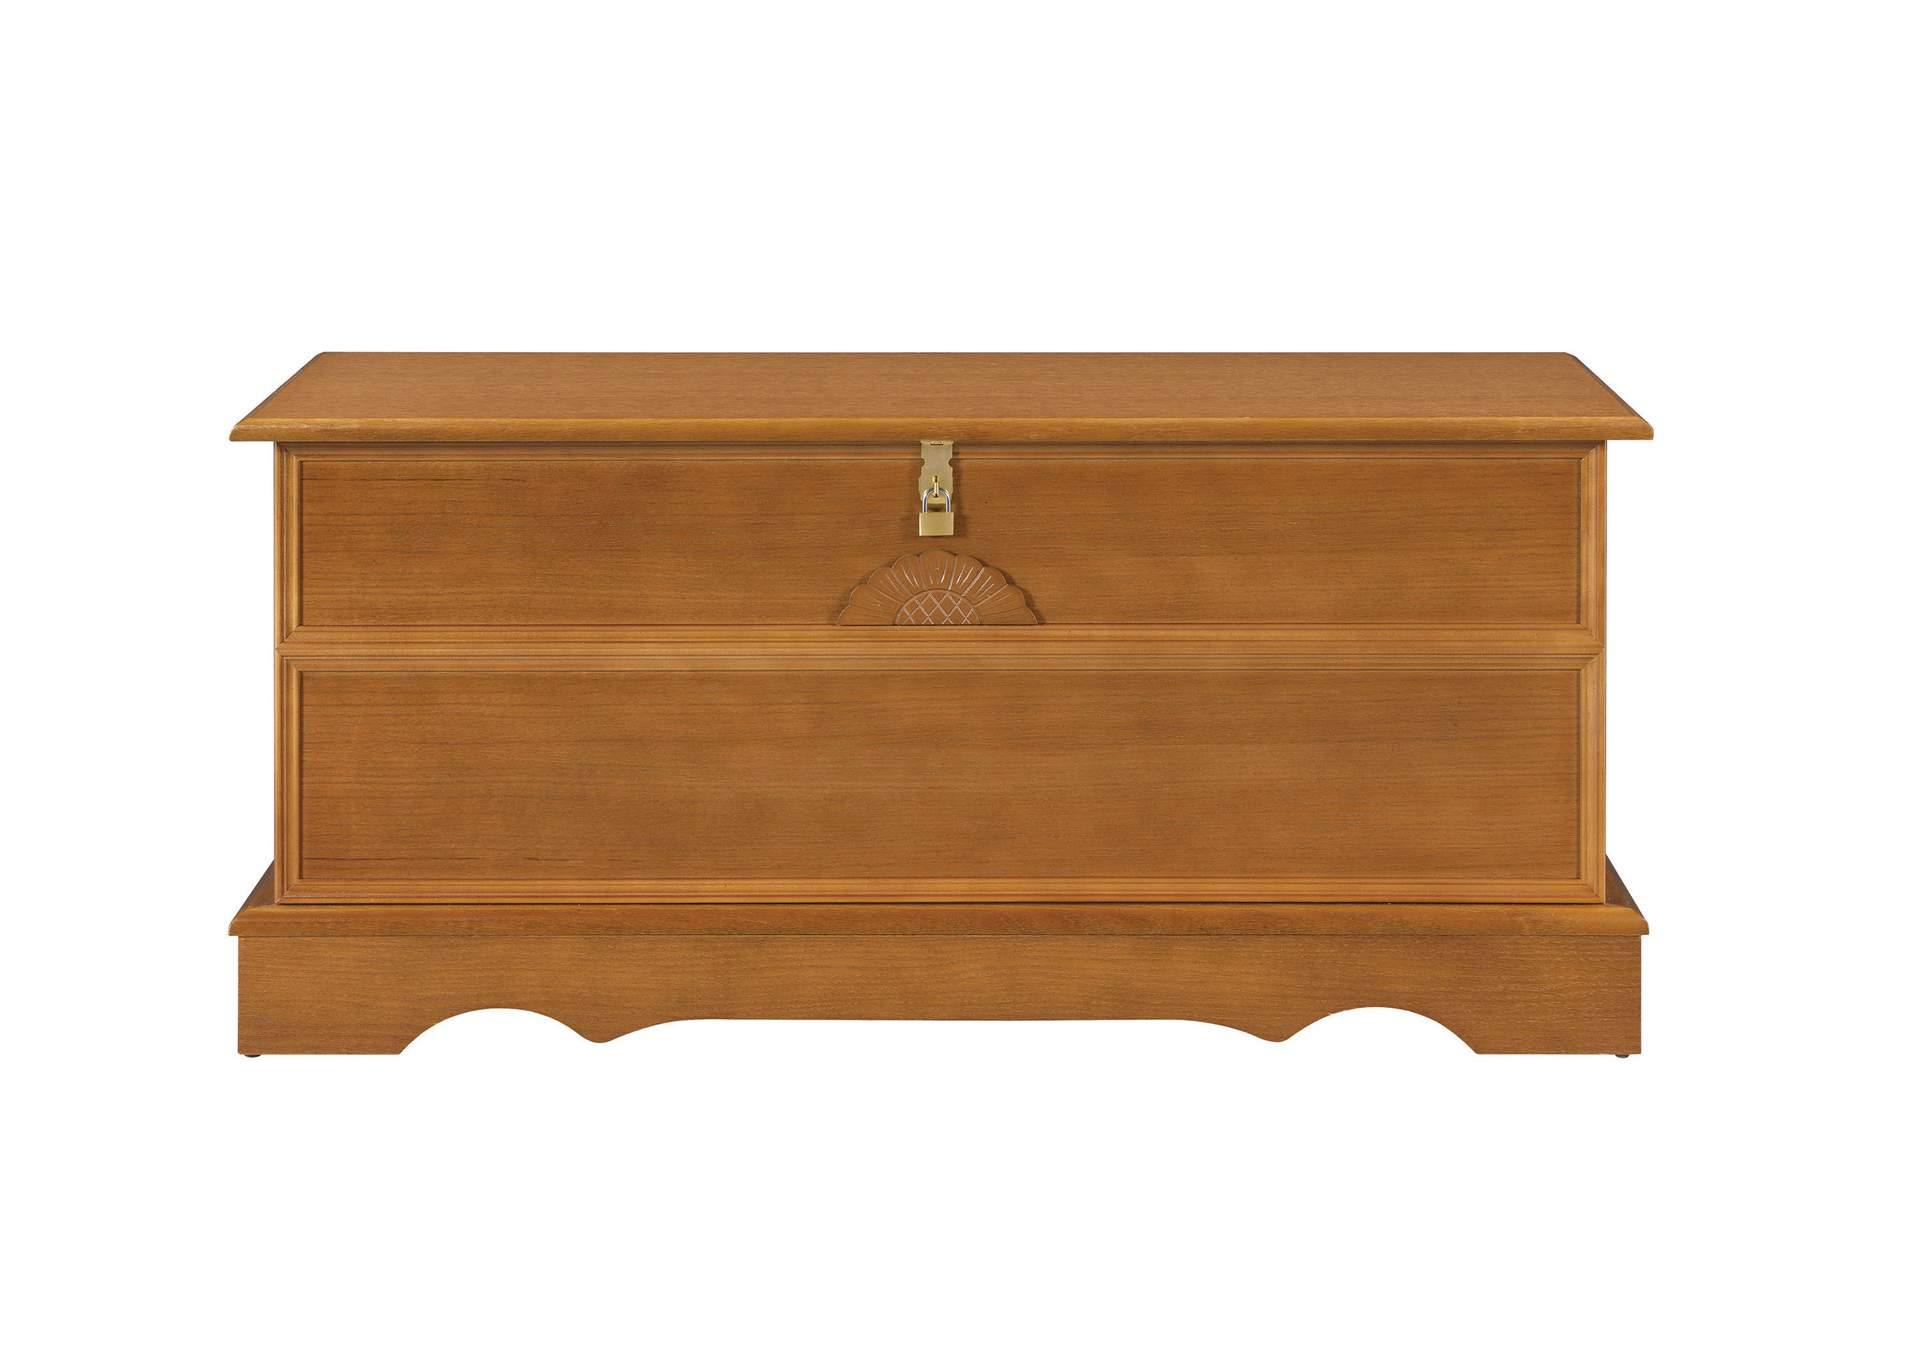 Honey Traditional Oak Honey Chest,Coaster Furniture